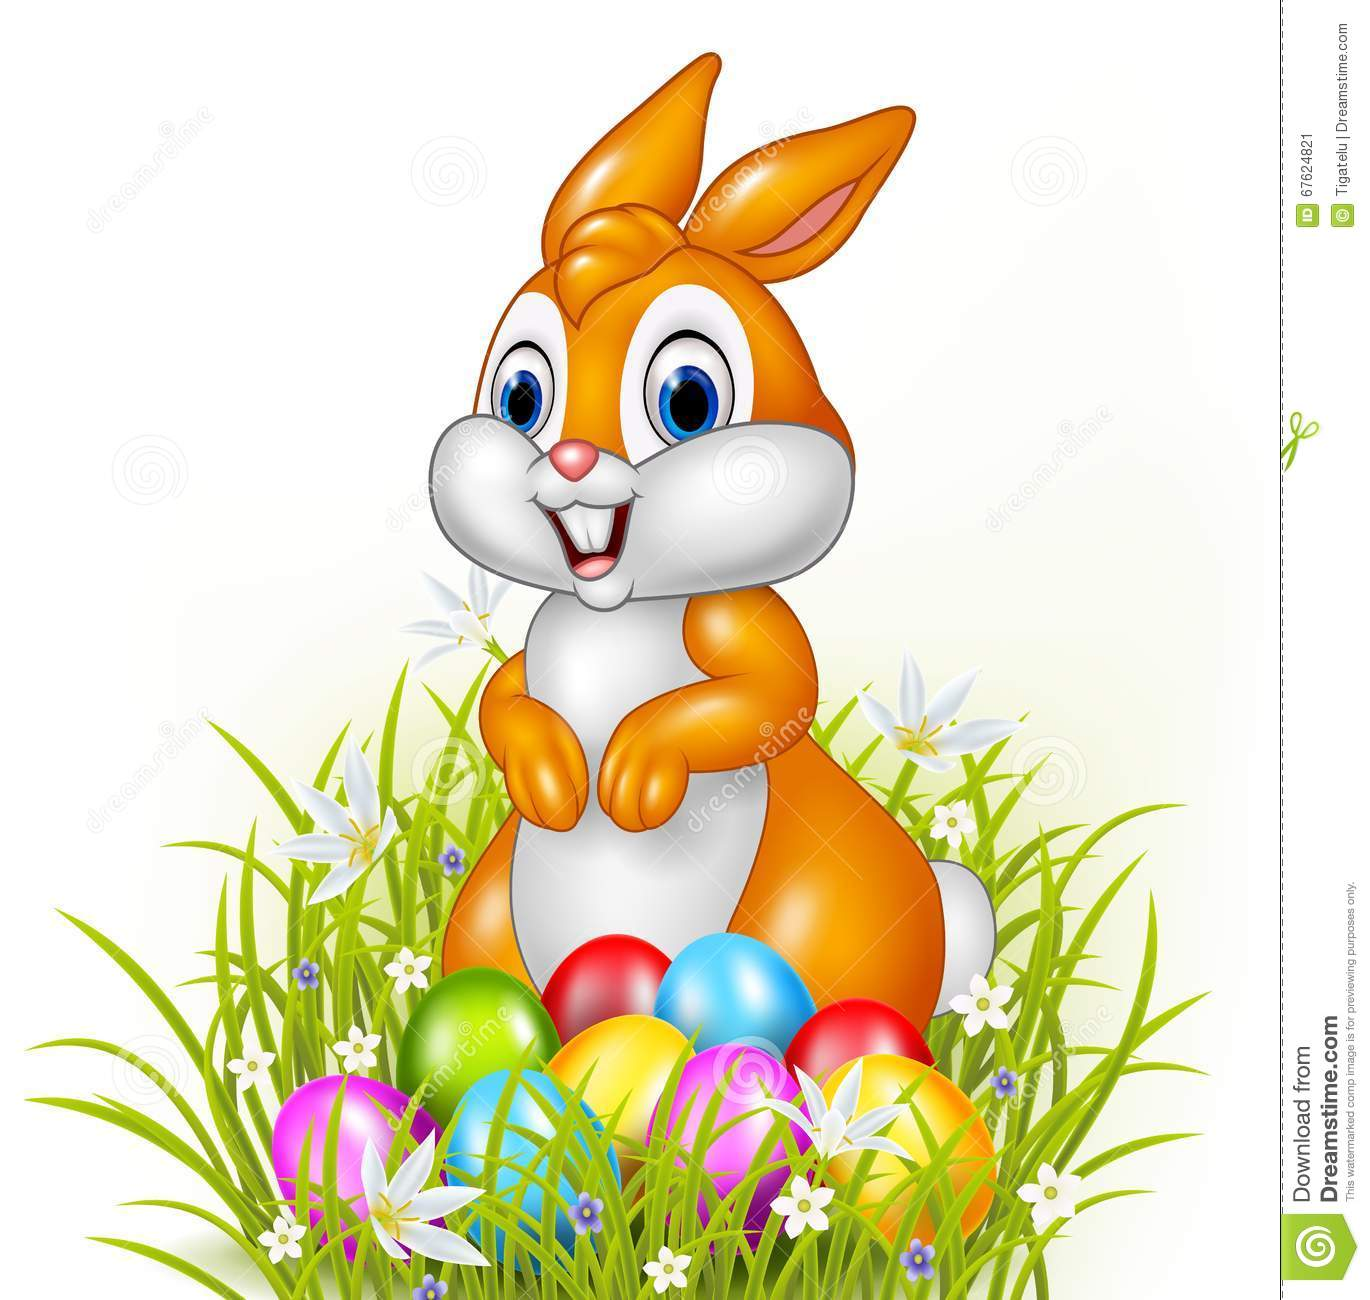 Cartoon Bunny With Easter Eggs Stock Vector - Image: 67624821